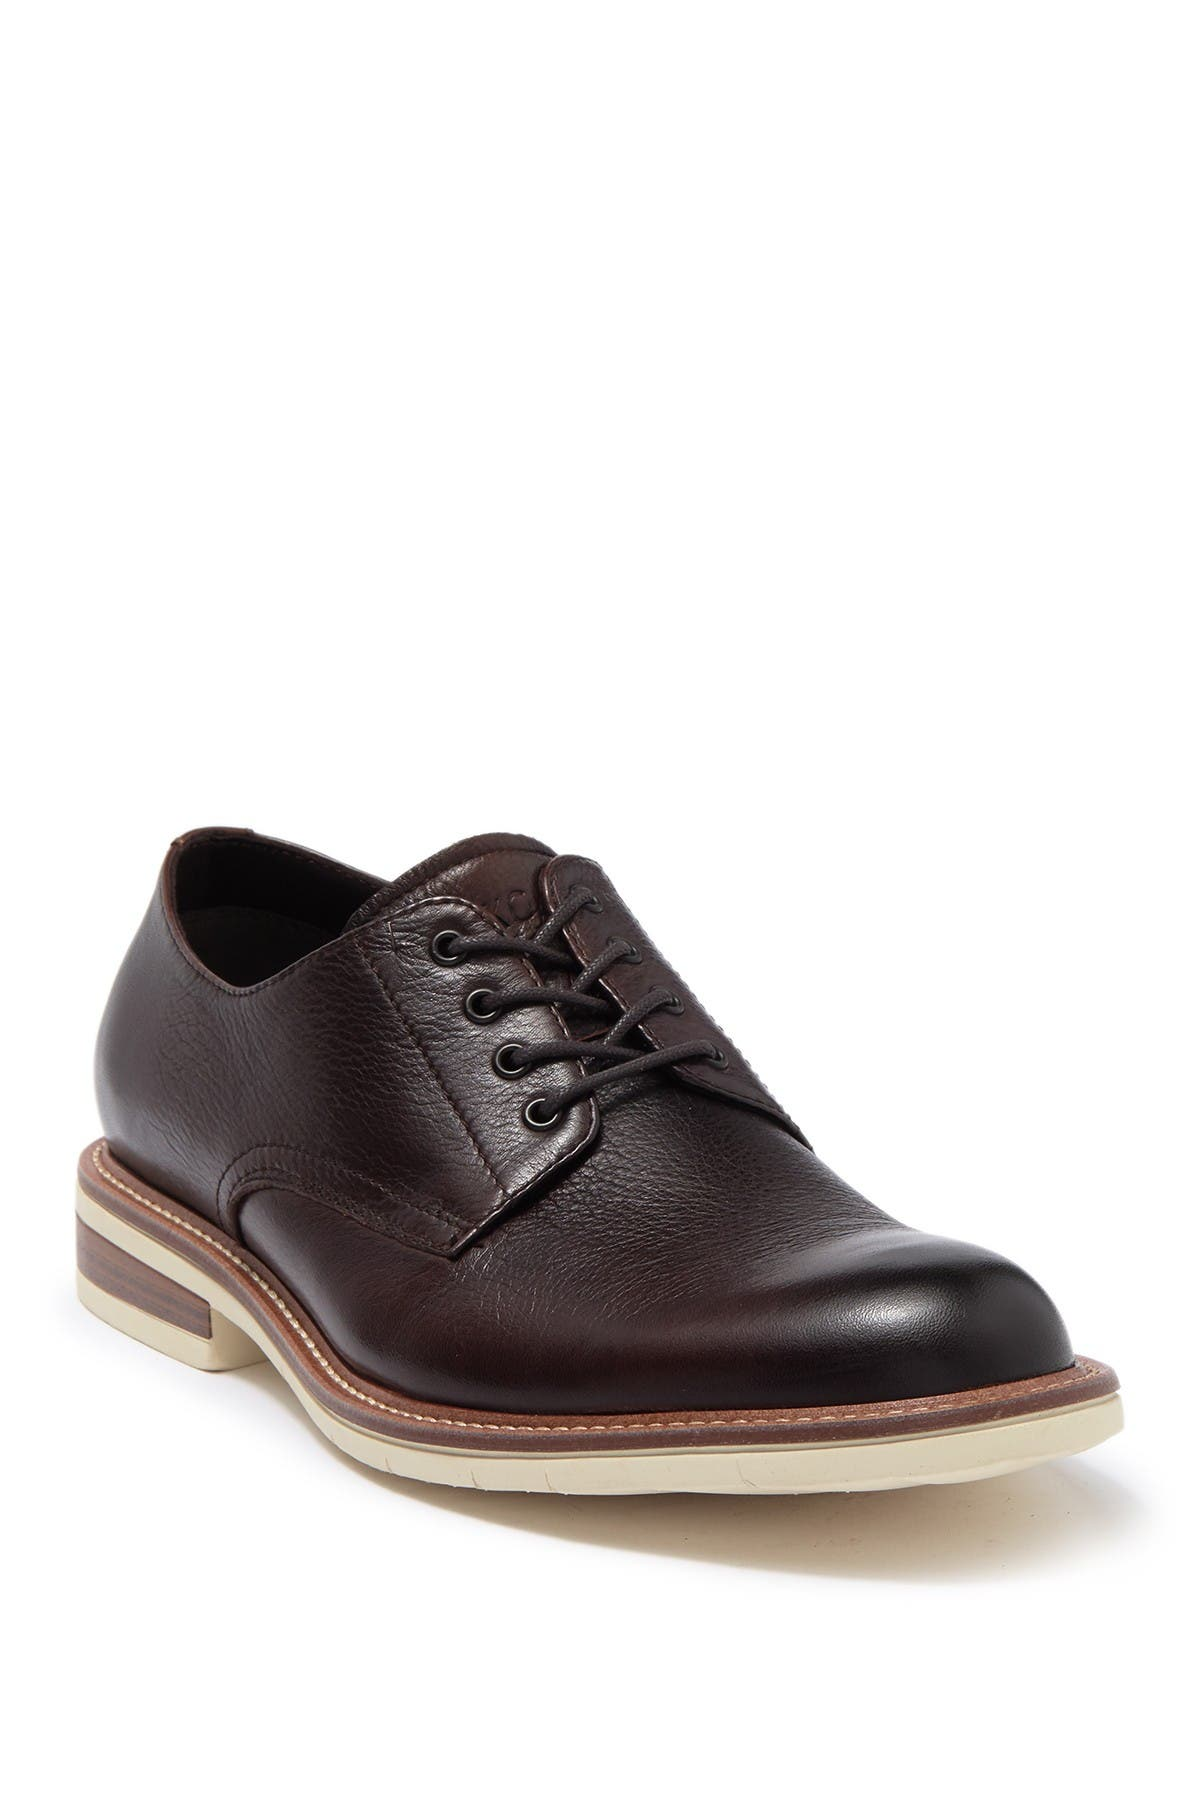 Image of Kenneth Cole Reaction Klay Flex Lace-Up Derby